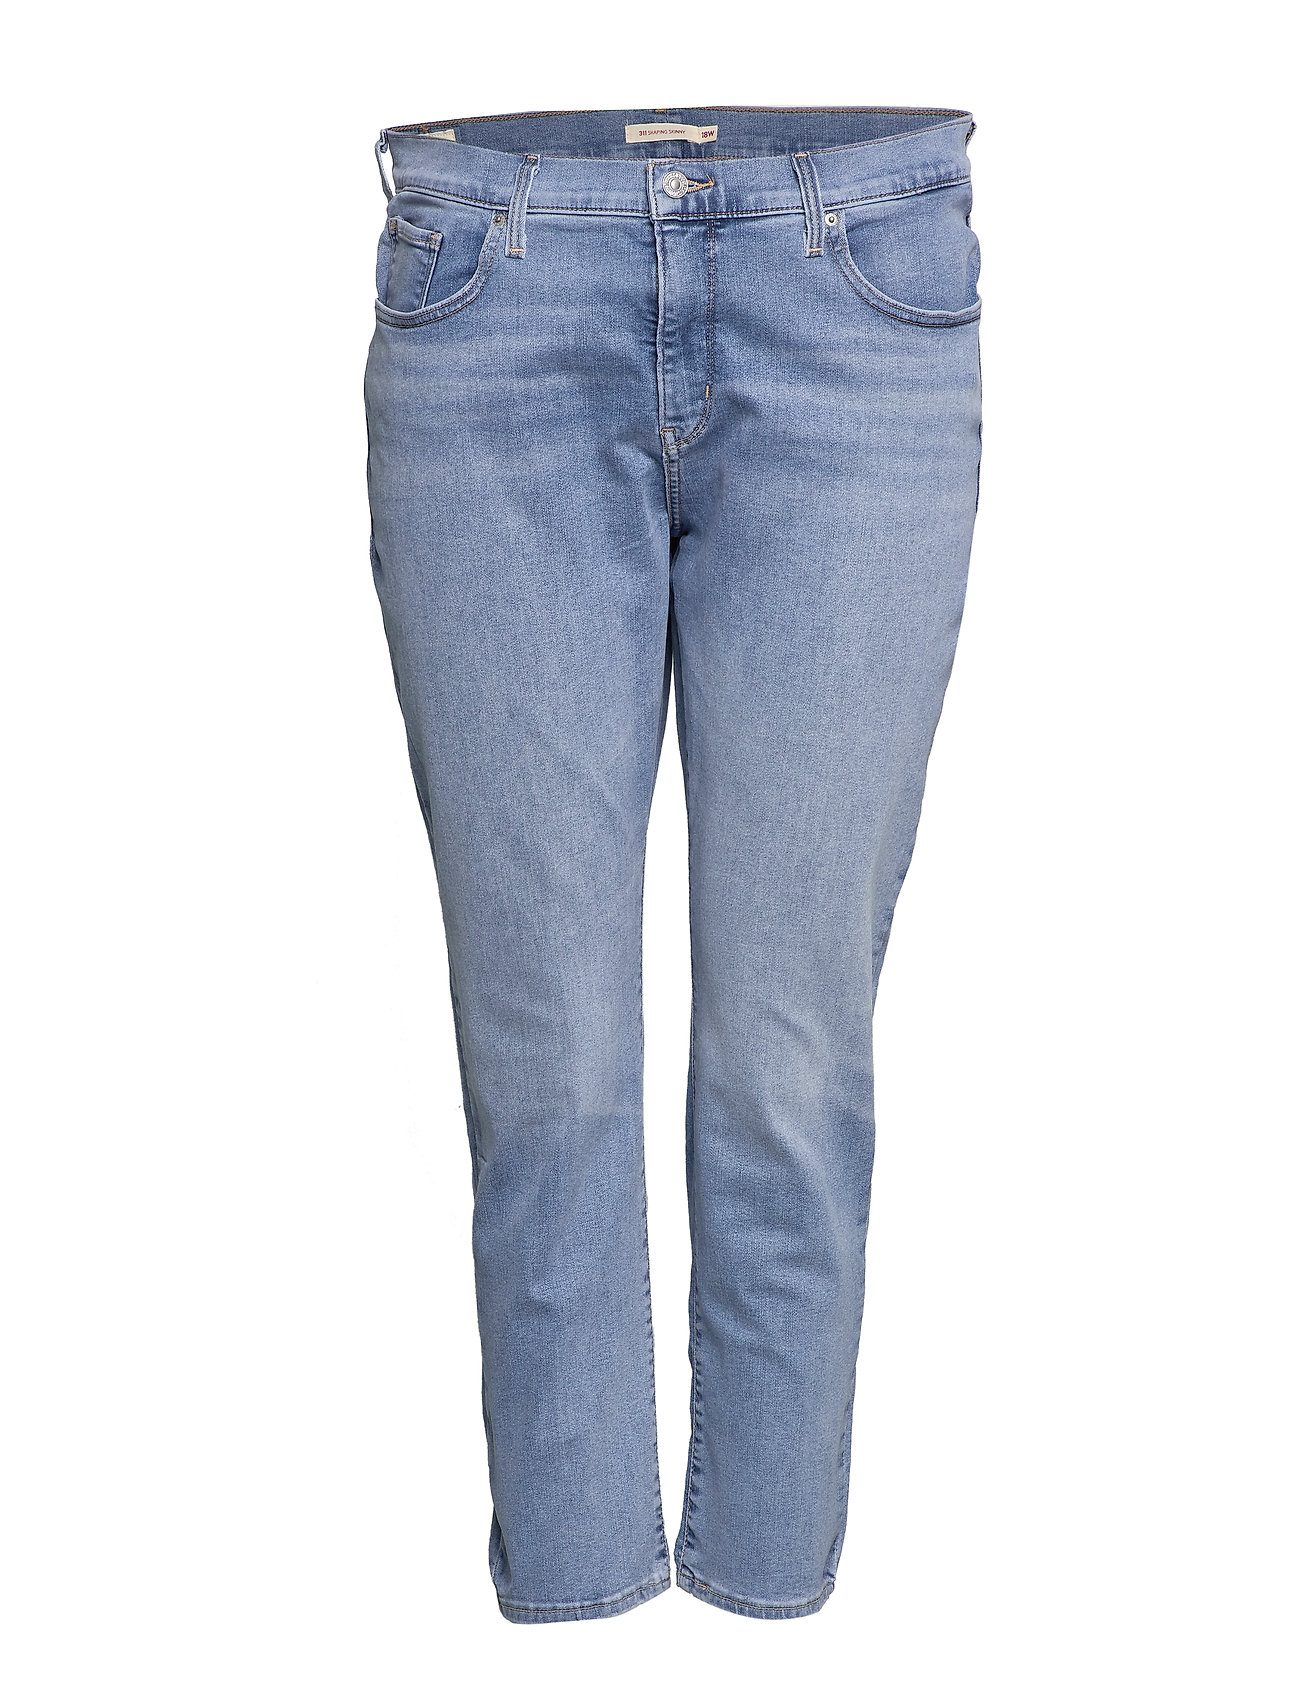 Levi's Plus Size 311 PL SHAPING SKINNY BERLIN S - LIGHT INDIGO - WORN IN